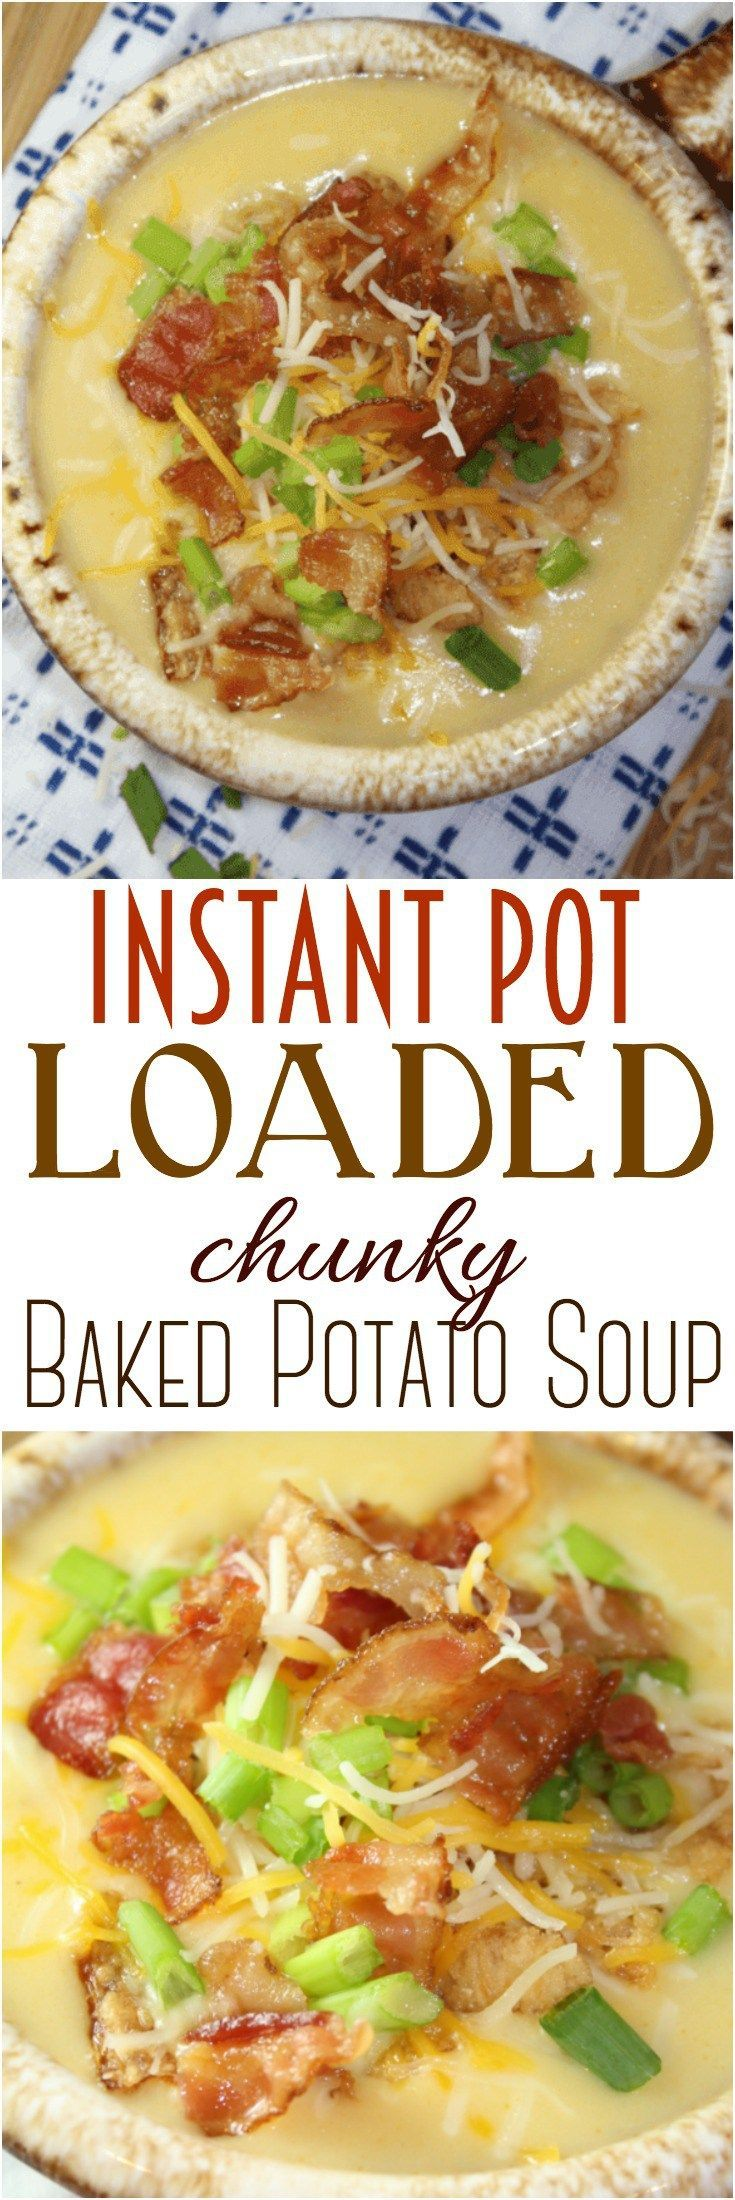 Loaded chunky potato soup - all the best flavors of a baked potato come together in this deliciously comforting soup, made easily in the Instant Pot! #potatosoup